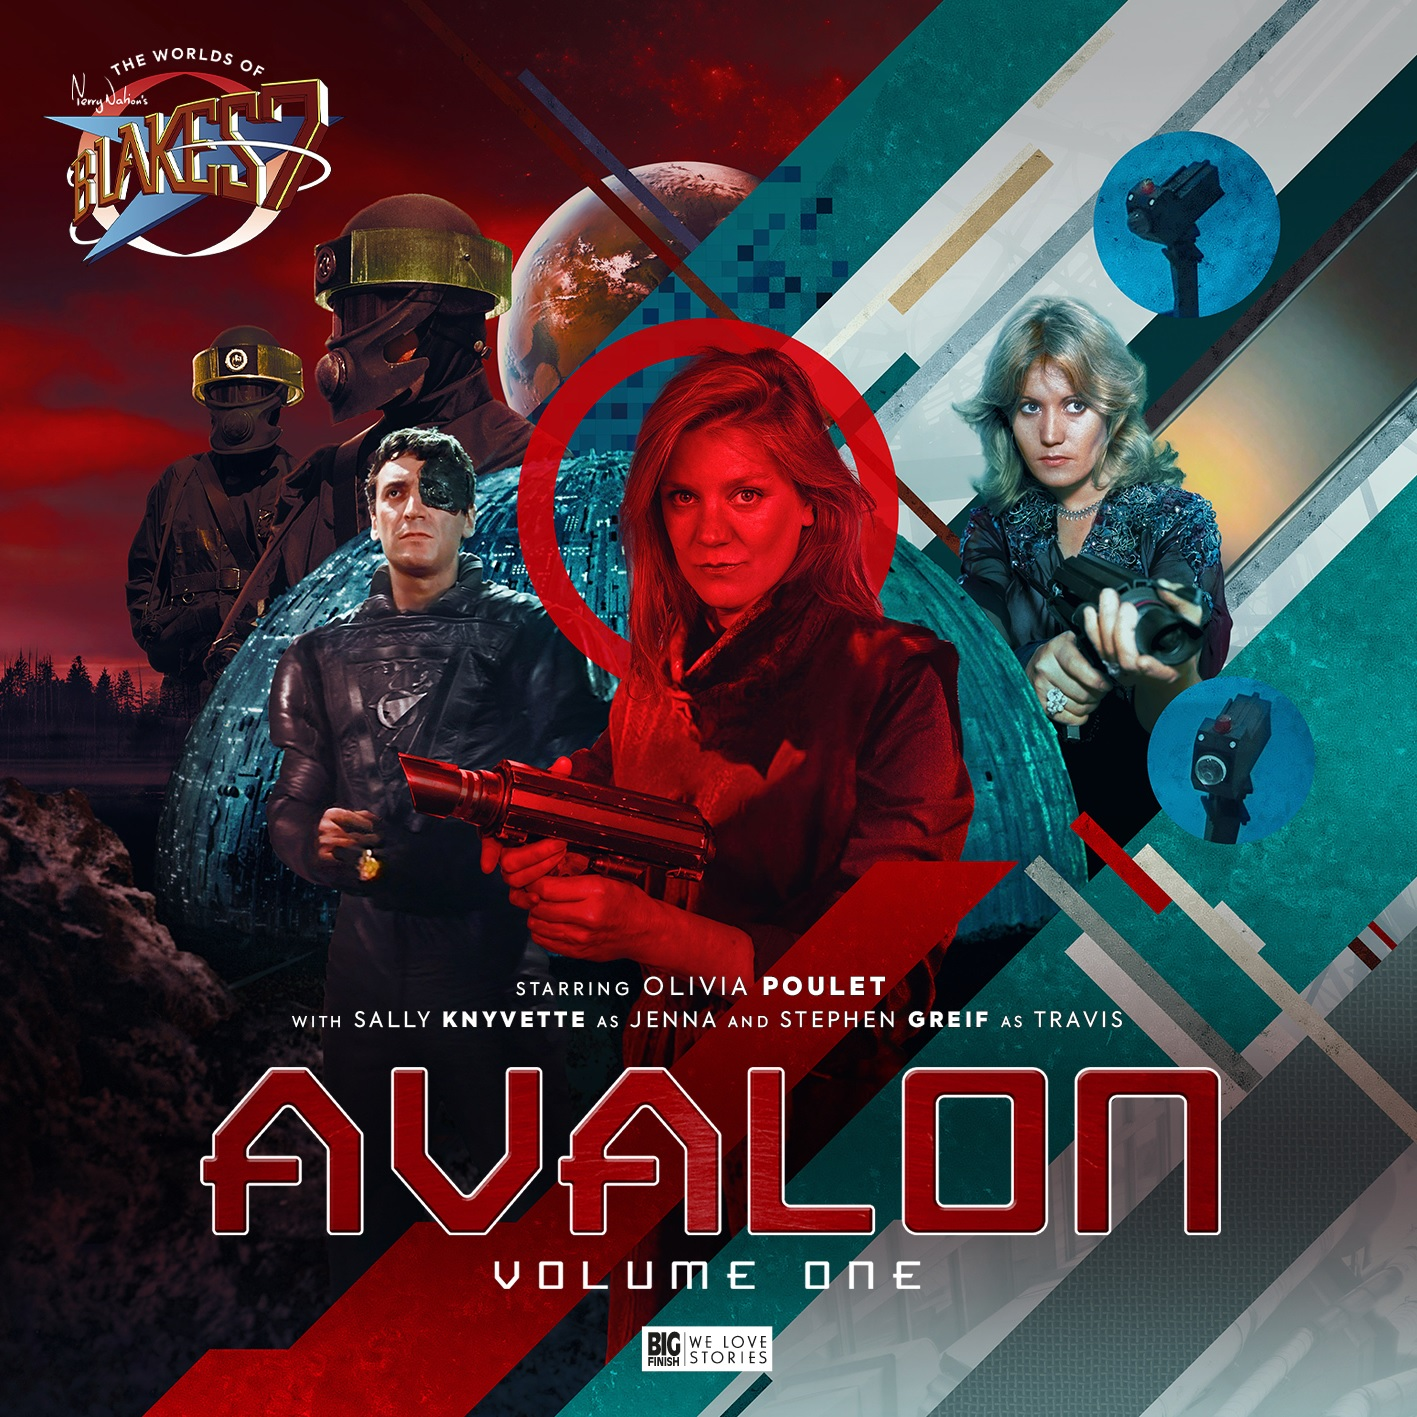 Out Now: Big Finish's The Worlds of Blake's 7 Launches with Avalon Volume 1